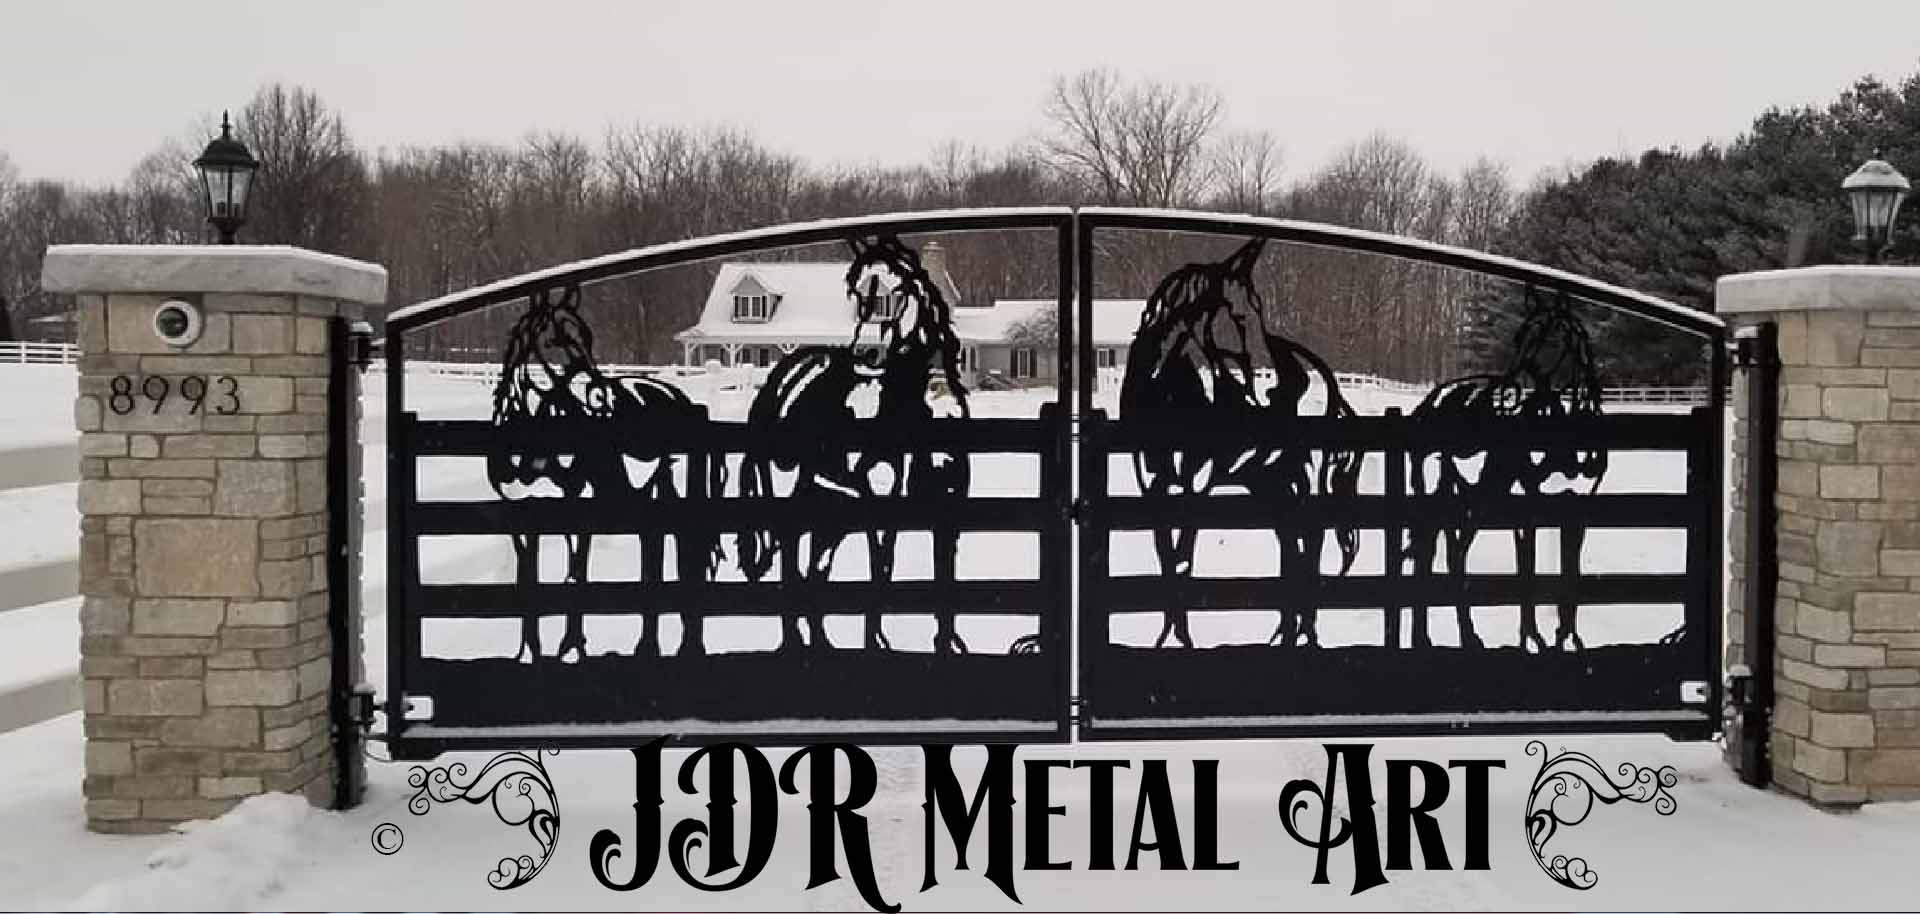 Horse farm driveway gates with silhouettes of four horses at a wooden fence.